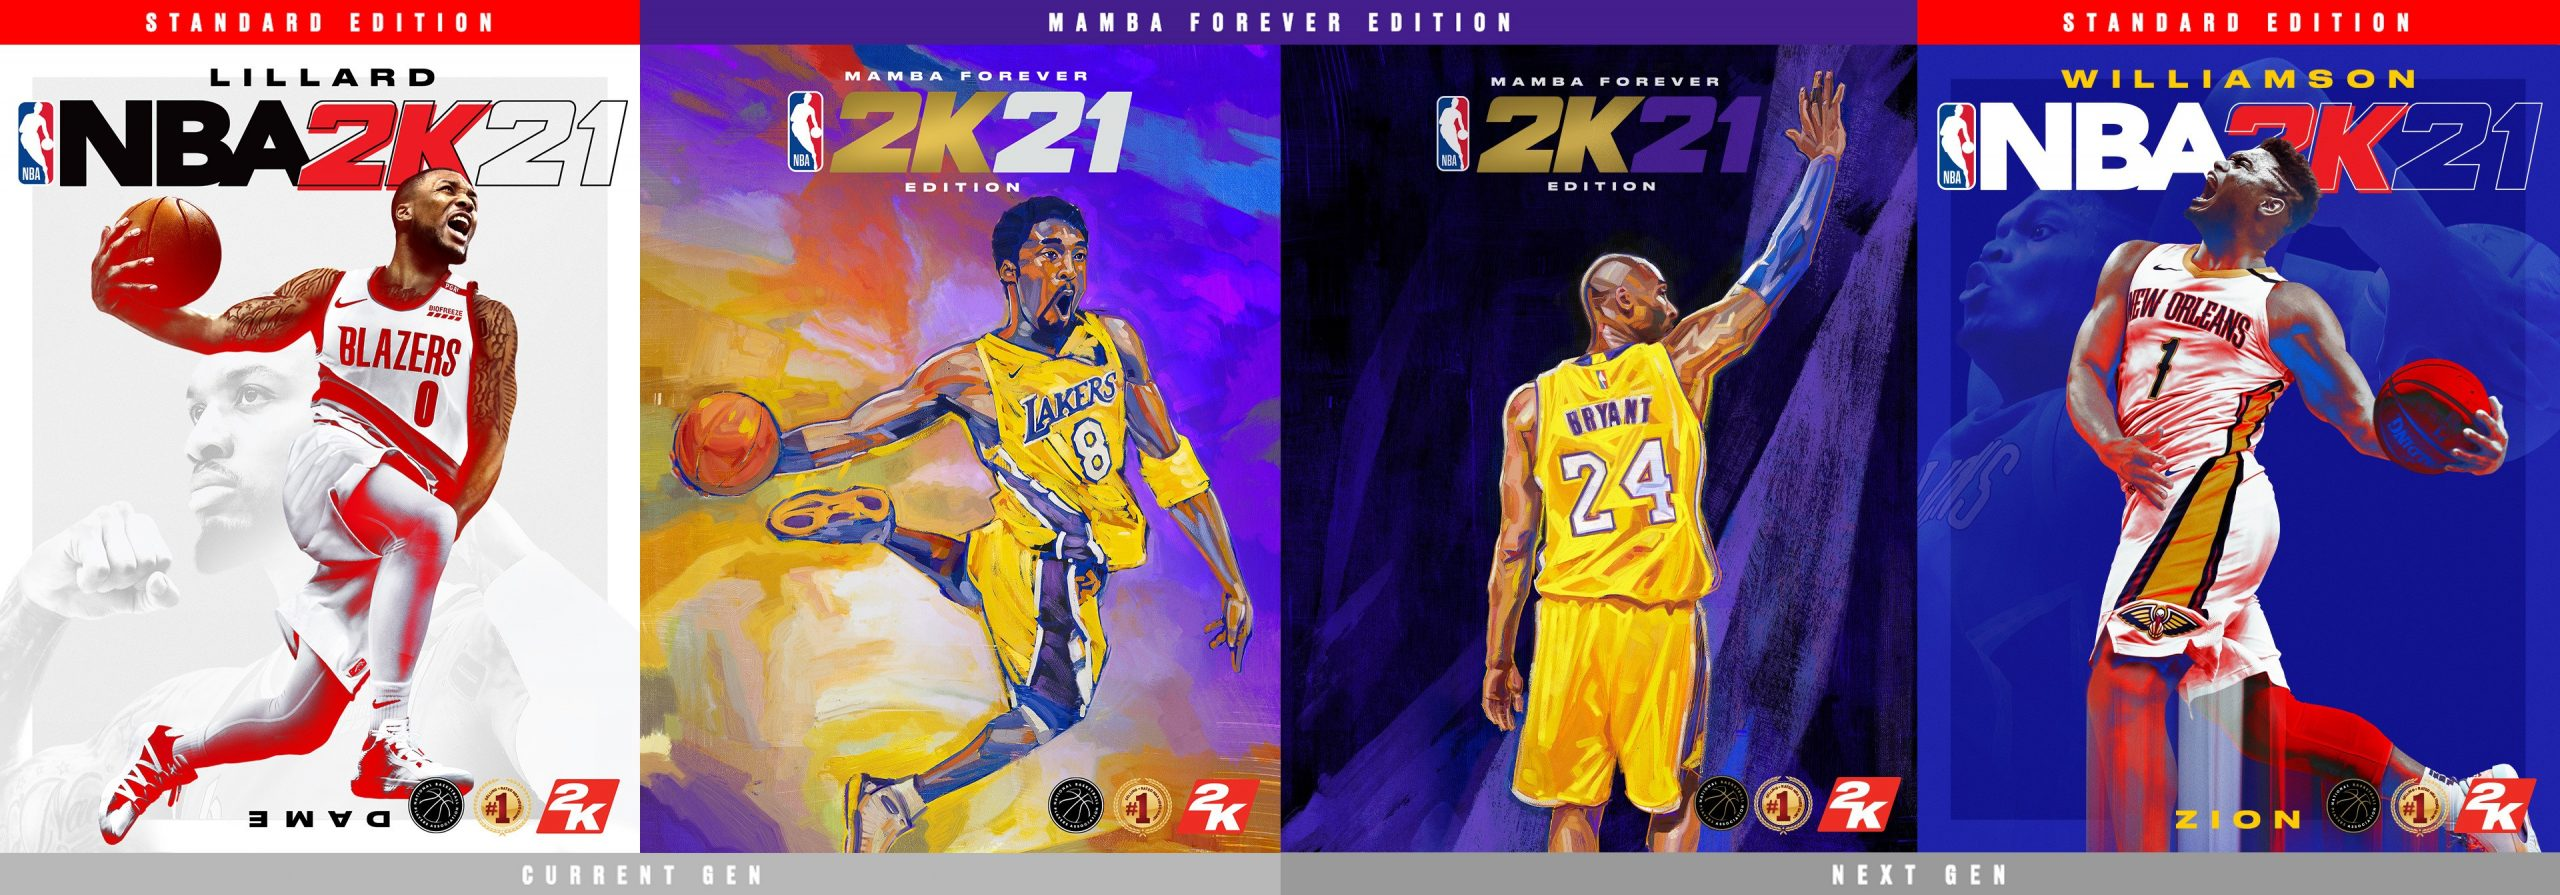 NBA 2K21 Game Release Cover Athletes